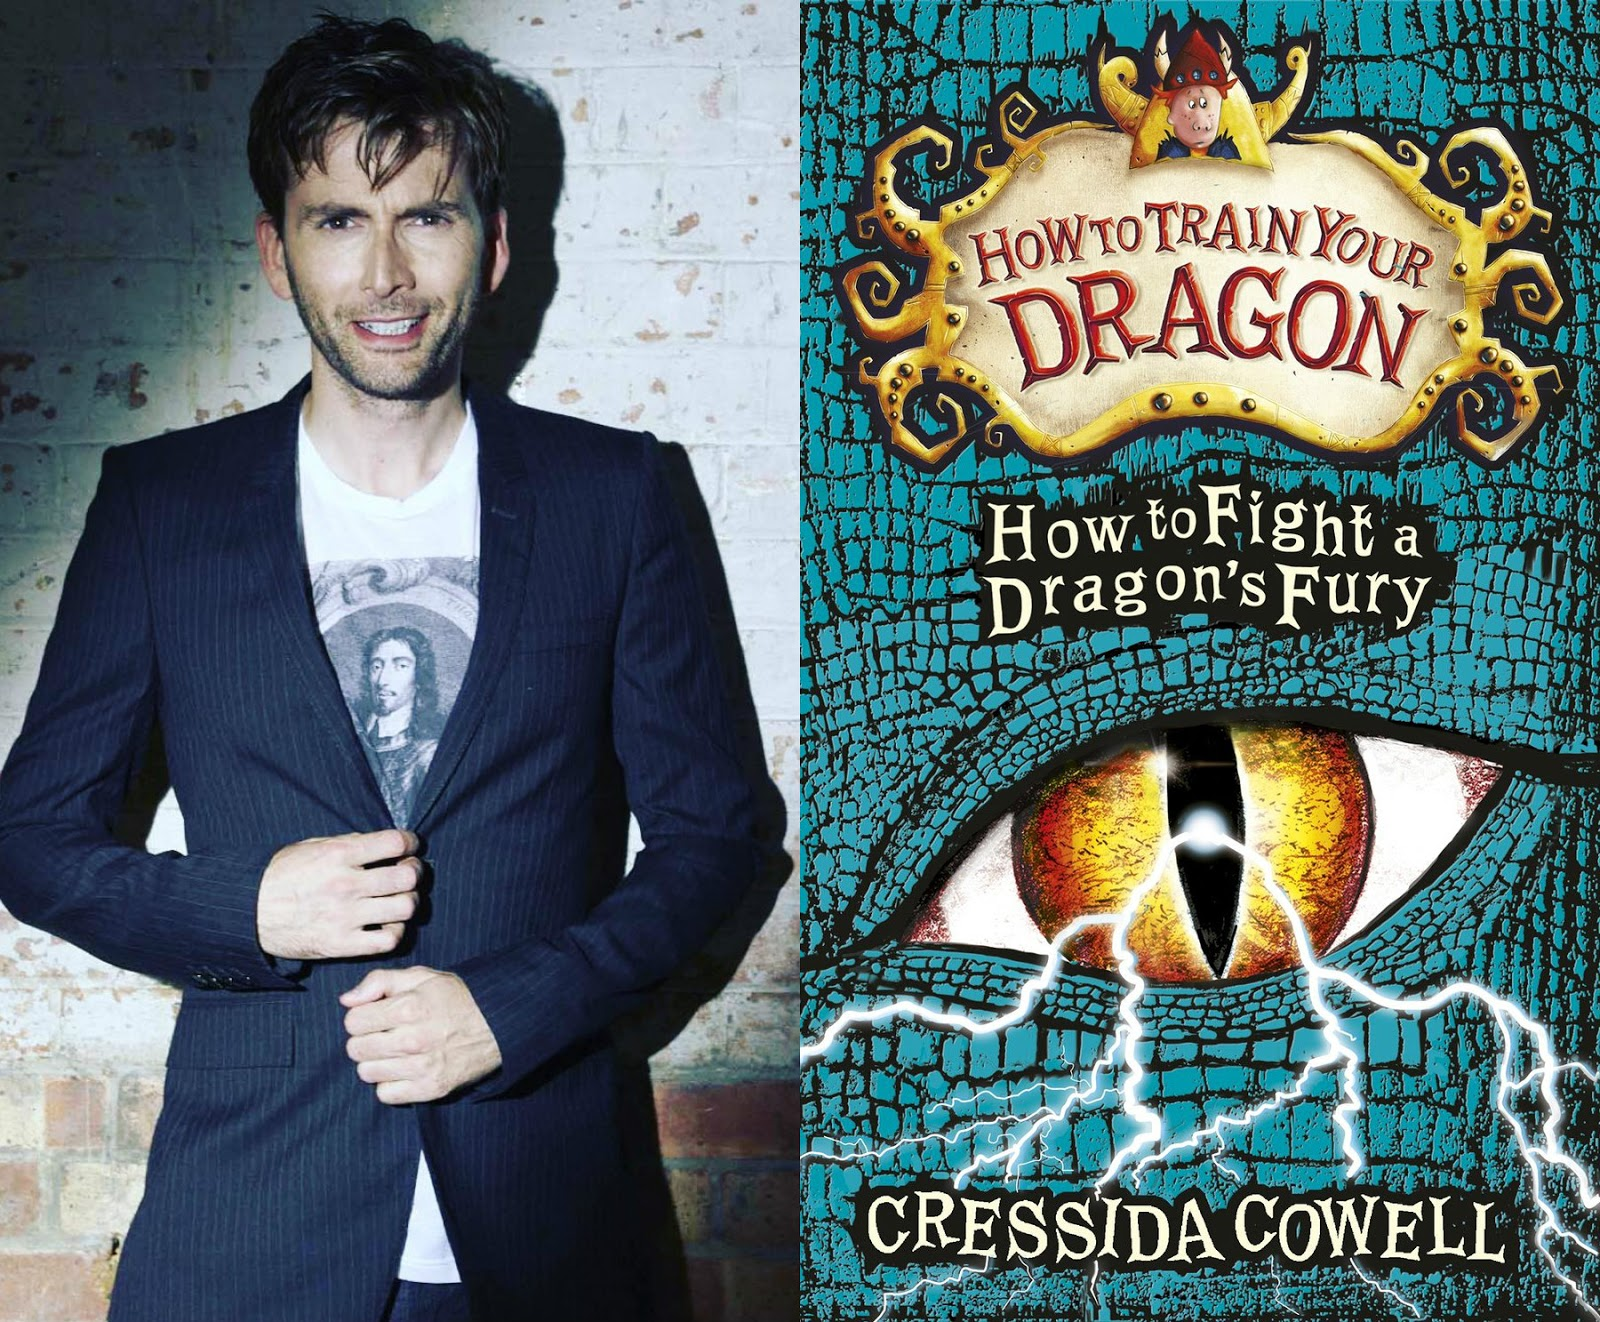 Audiobook: David Tennant Records Final Volume Of The How To Train Your  Dragon Saga